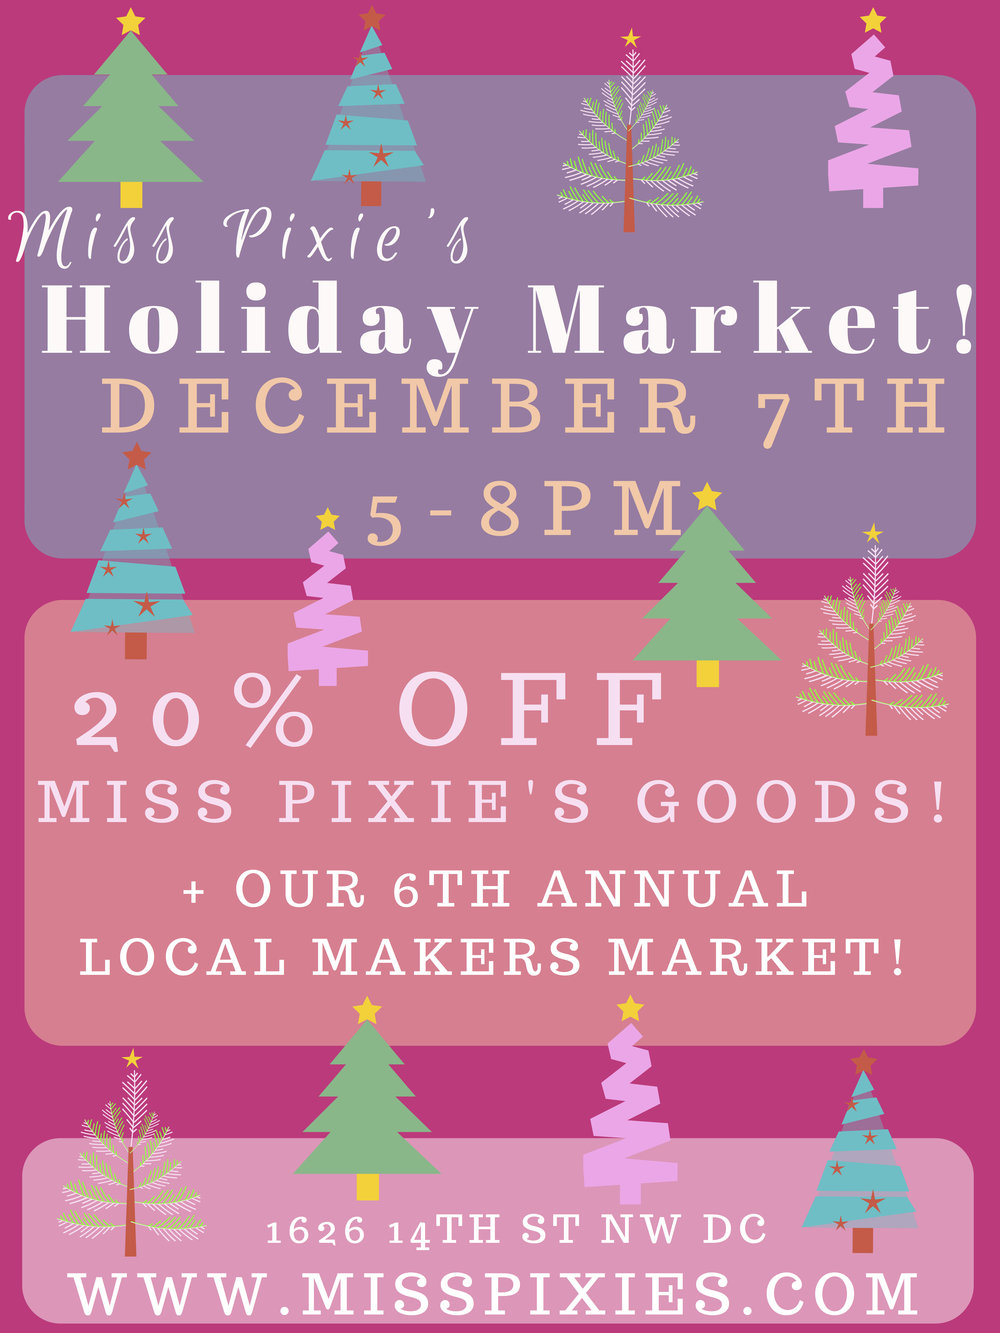 MISS PIXIE'S HOLIDAY MARKET 2018 6th annual-3.jpg